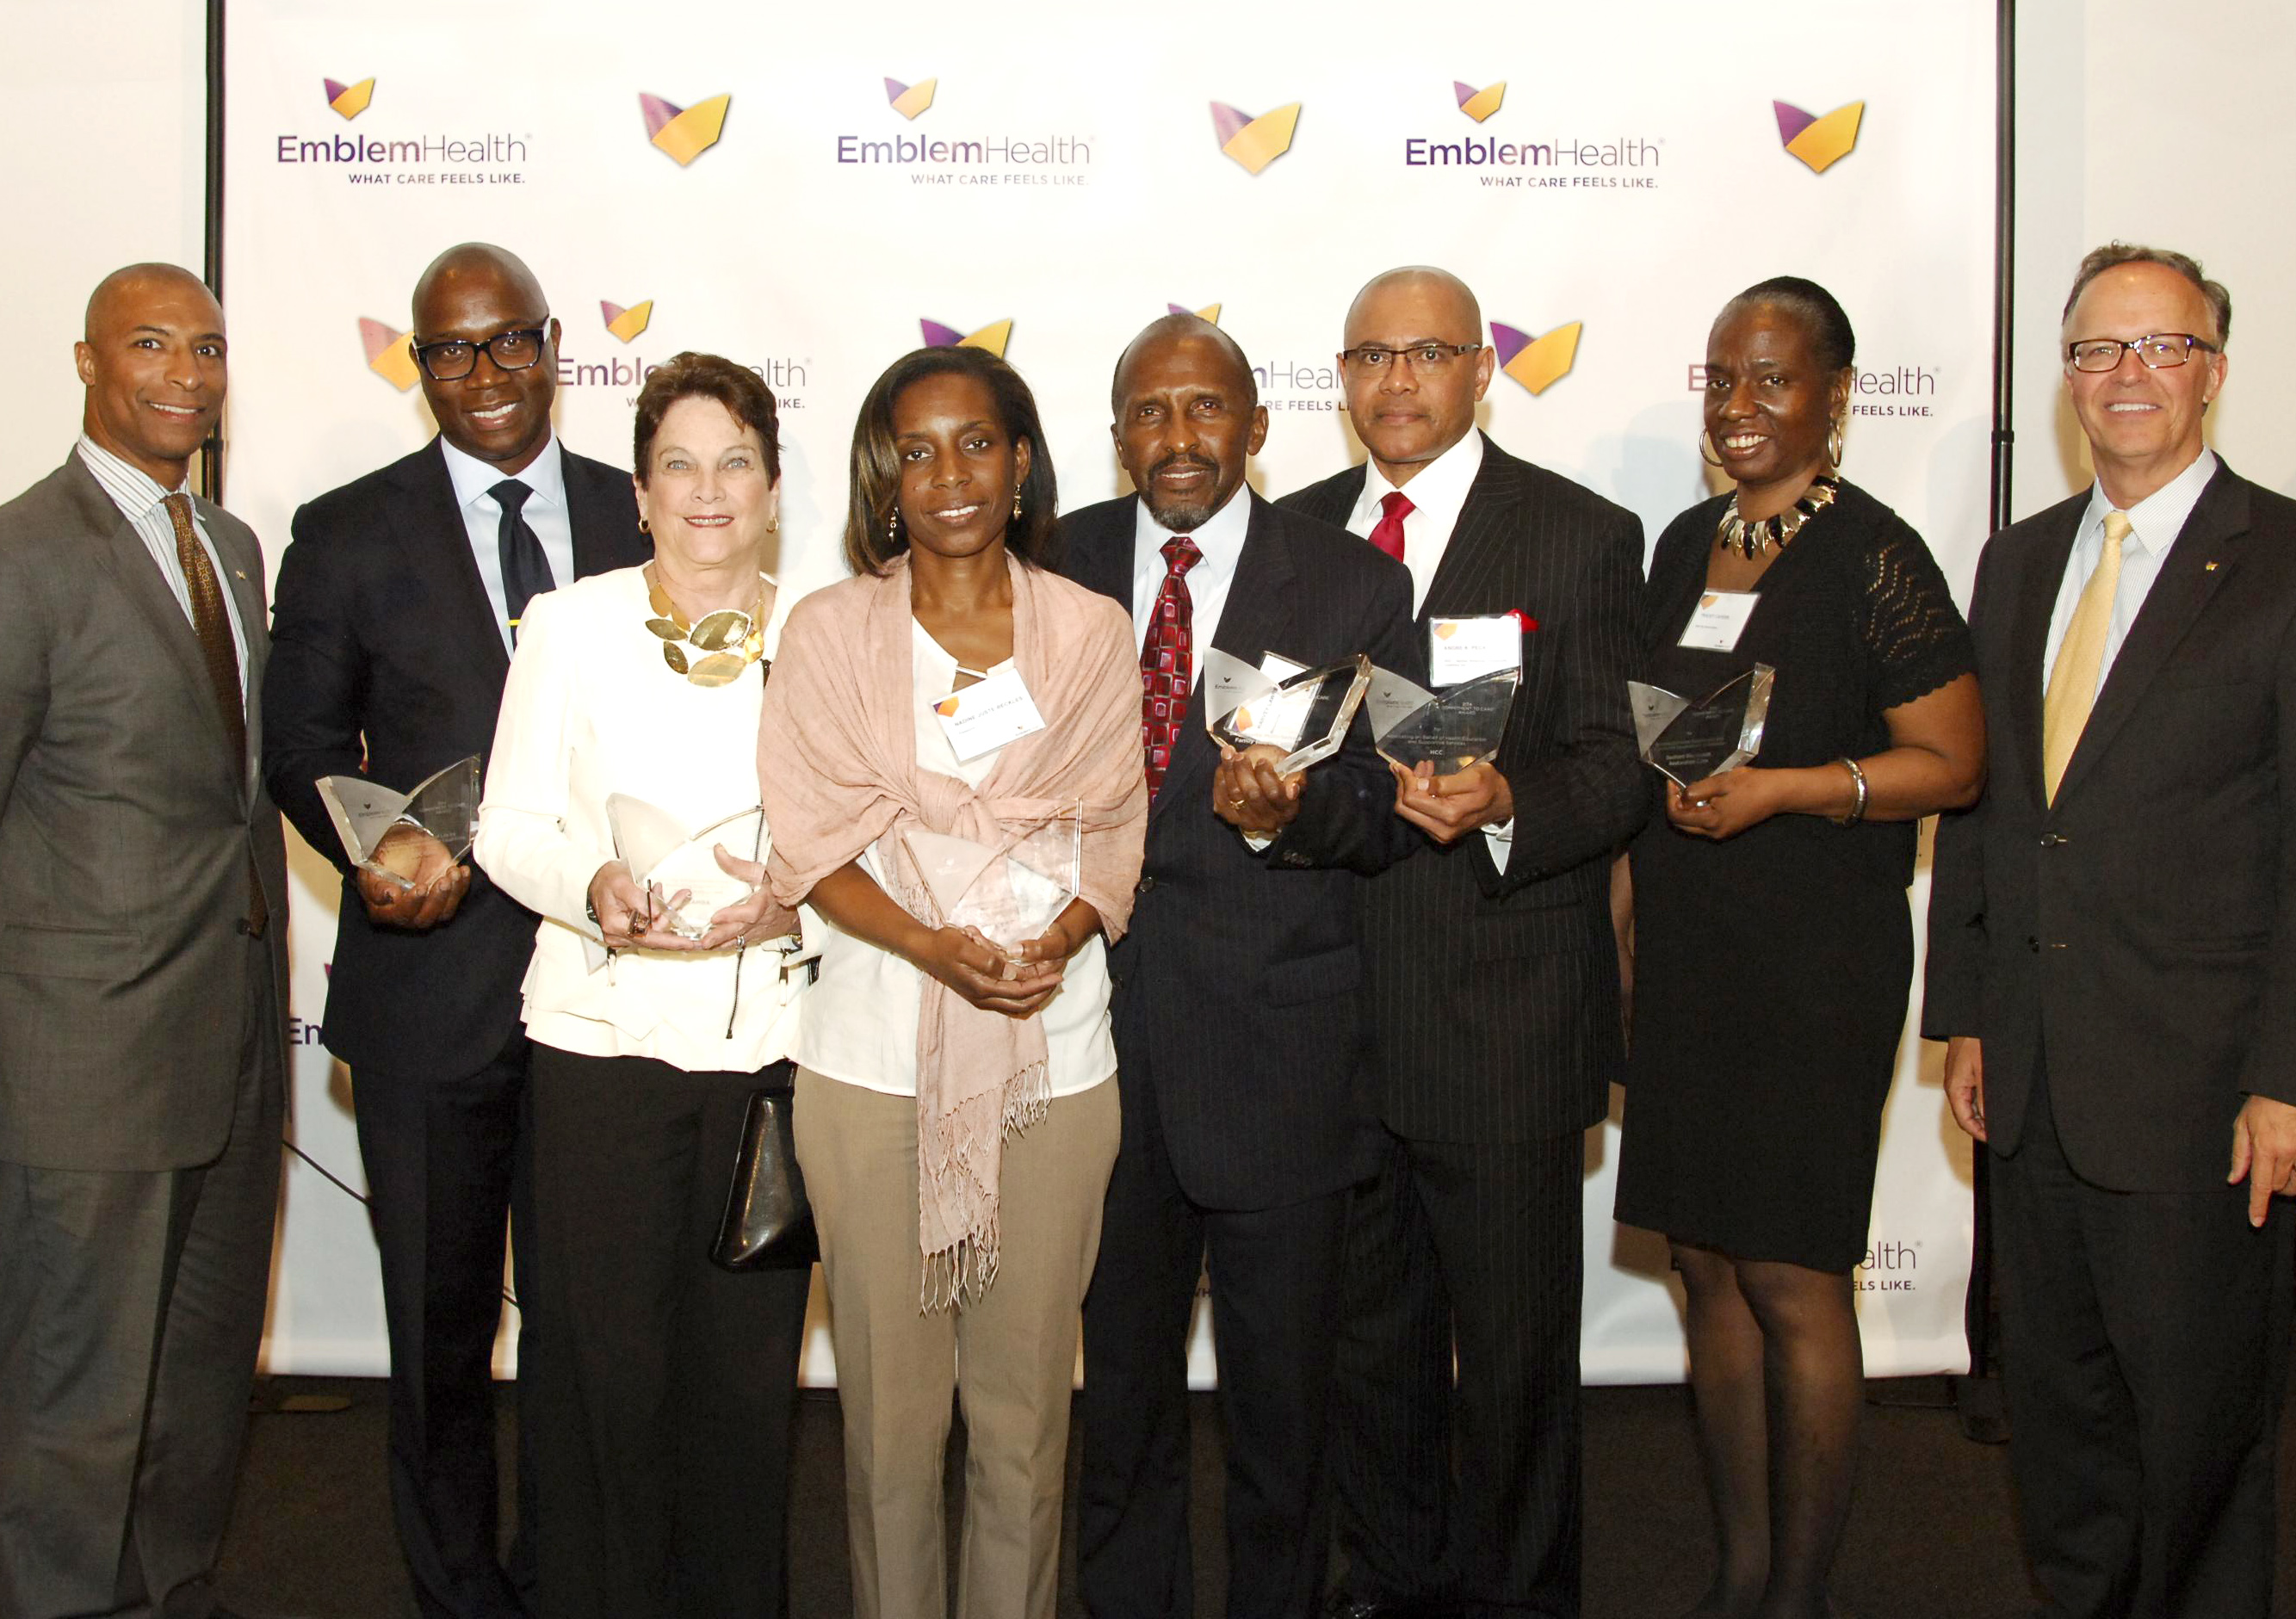 Photo 3 (Left to Right) David Flemister, Director of Community Marketing, EmblemHealth; Charles A. Archer, Esq, Chief Executive Officer, Evelyn Douglin Center for Serving People in Need; Joanne Oplustil, President and Chief Executive Officer, CAMBA; Nadine Juste-Beckles, Board Member, Dispora Community Services; Harvey Lawrence, President and Chief Executive Officer, Brownsville Multi-Service Family Health Center; Dr. Andre K. Peck, Executive Director, Haitian-American Community Coalition; Tracey Capers, Executive Vice President for Programs, Bedford Stuyvesant Restoration Corporation; Dave Mahder, Vice President of Marketing and Communications, EmblemHealth